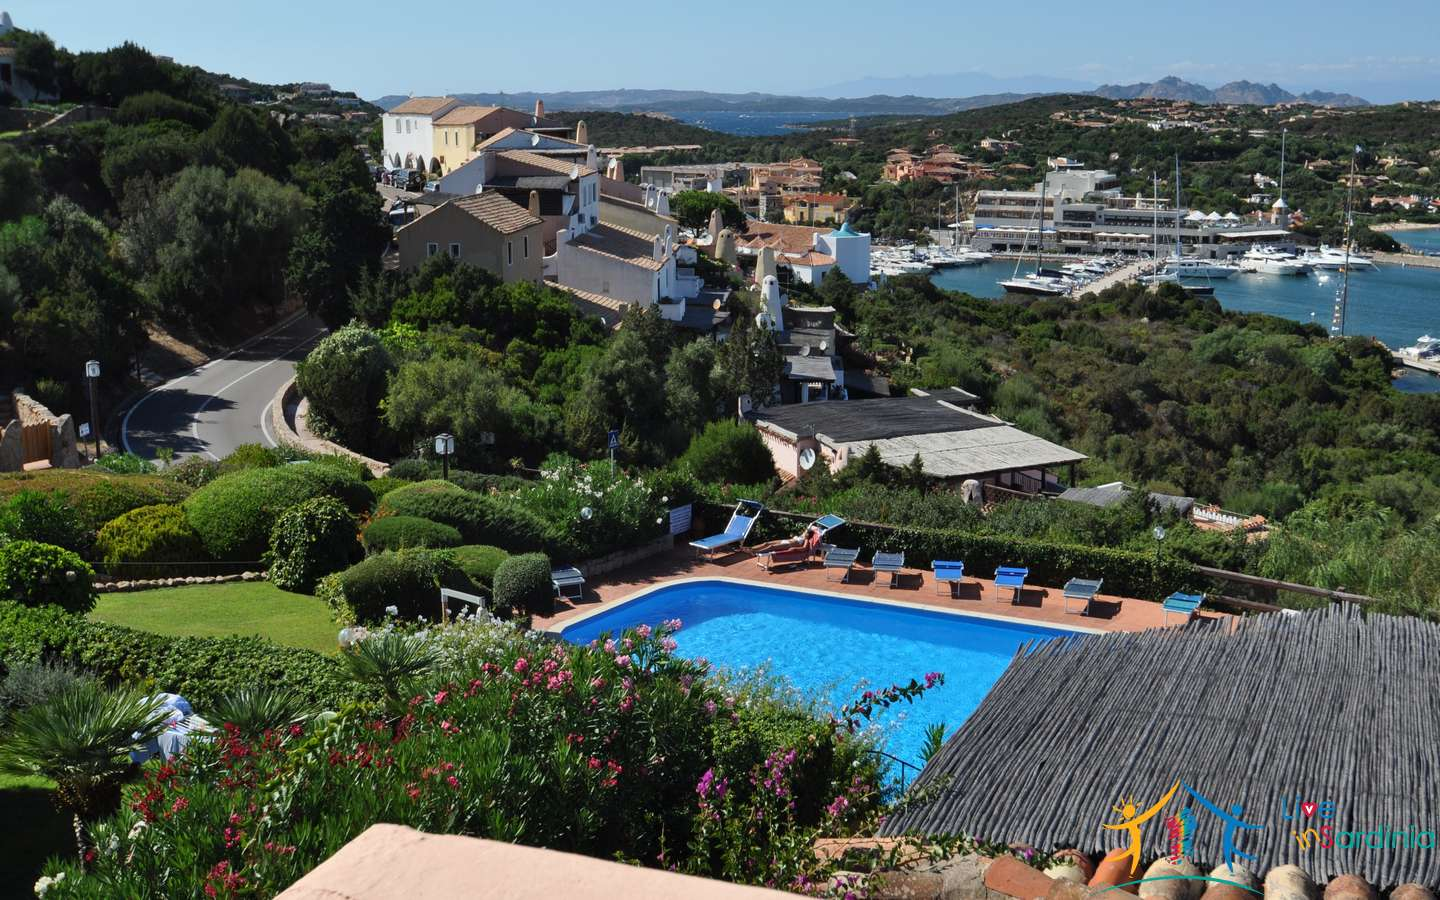 House for Sale Porto Cervo Marina, Northern Sardinia